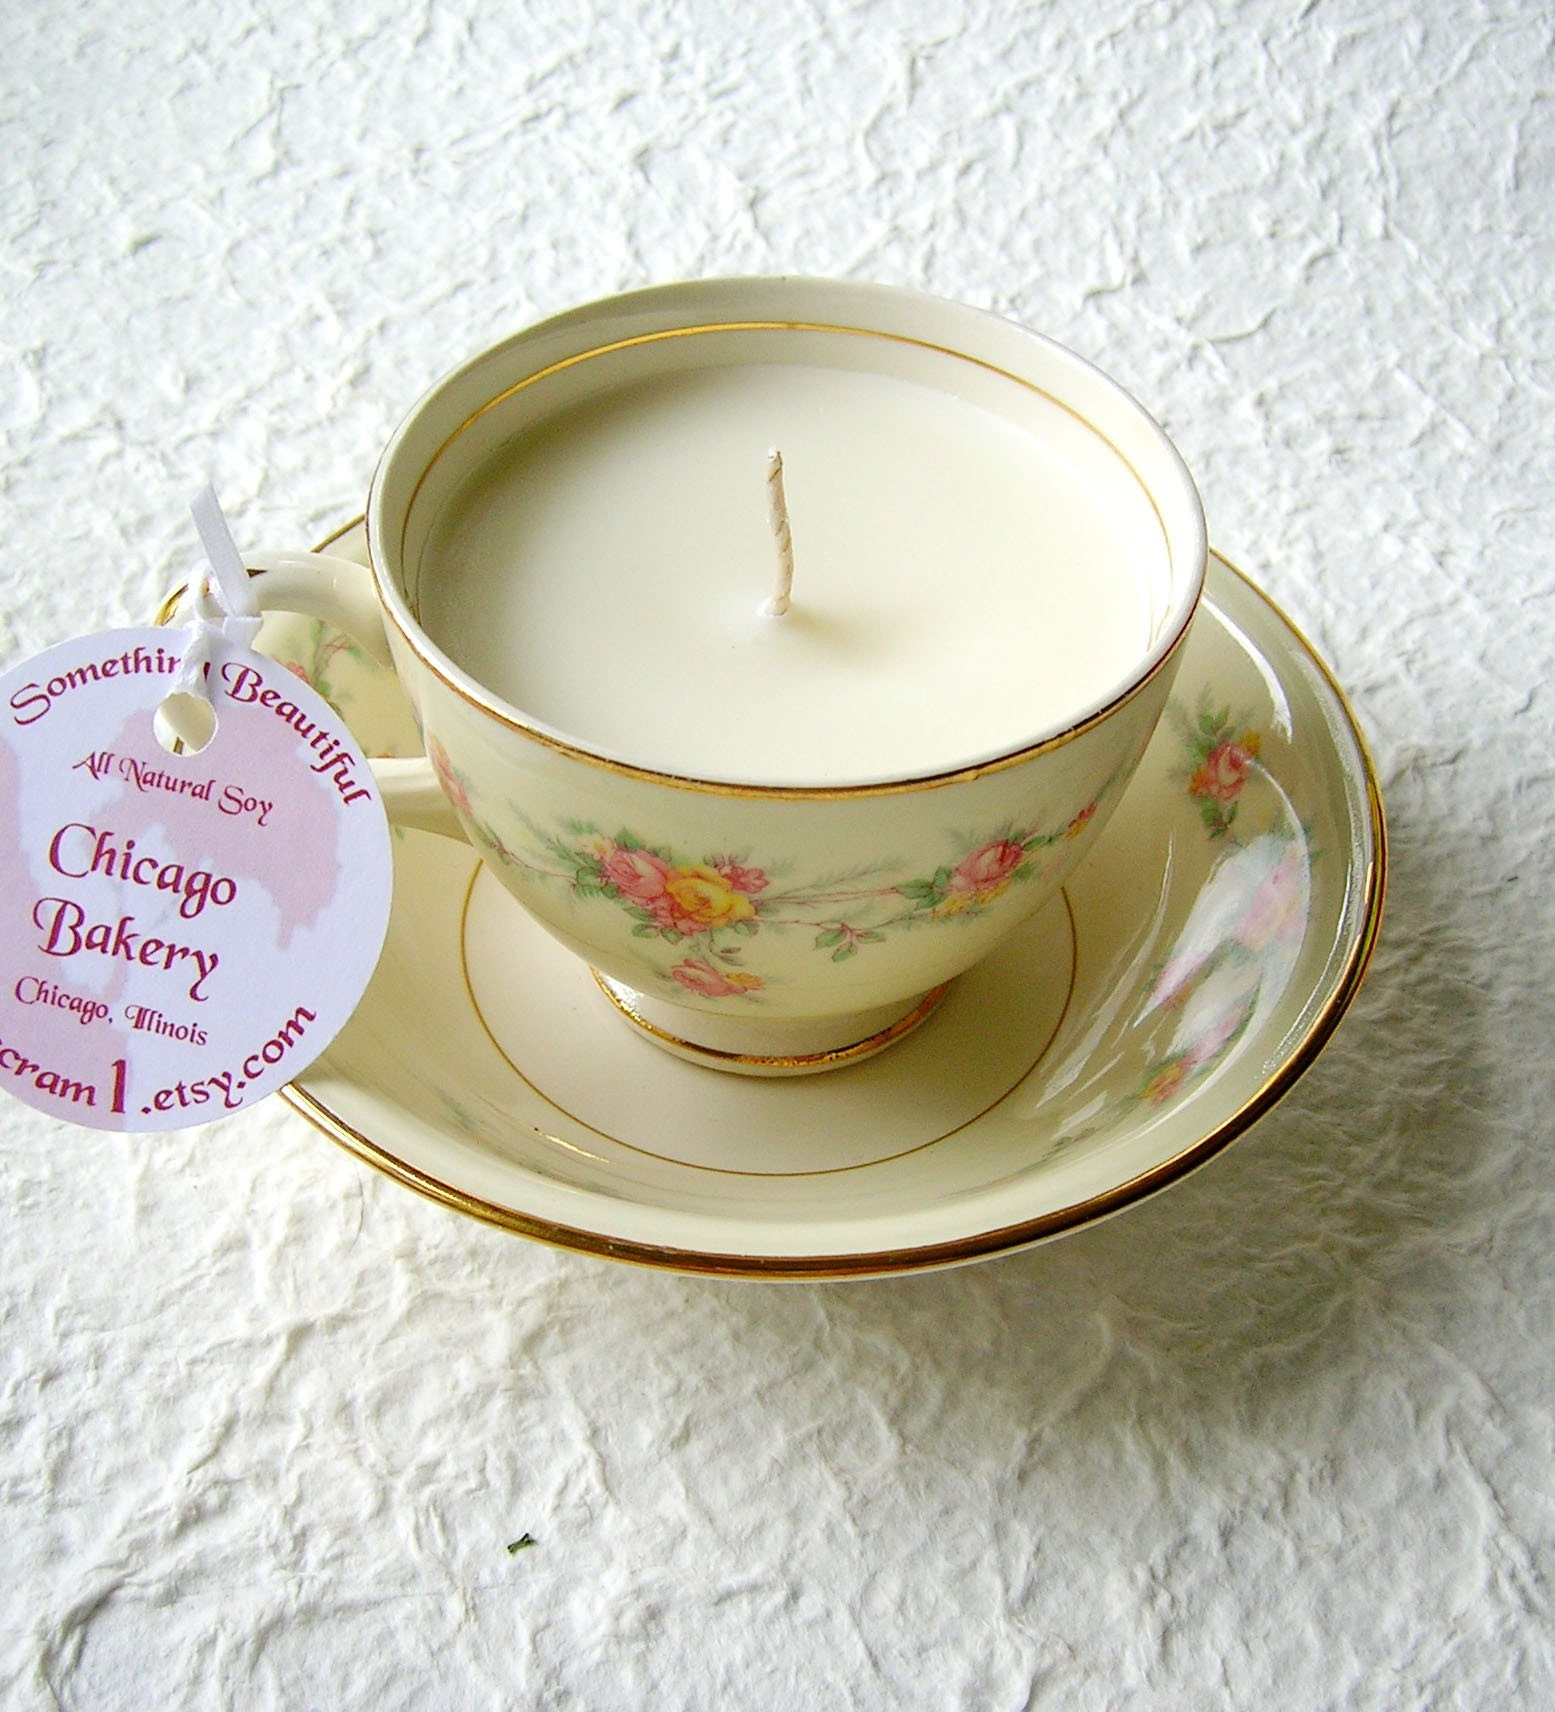 Chicago Bakery Vintage Soy Teacup Candle